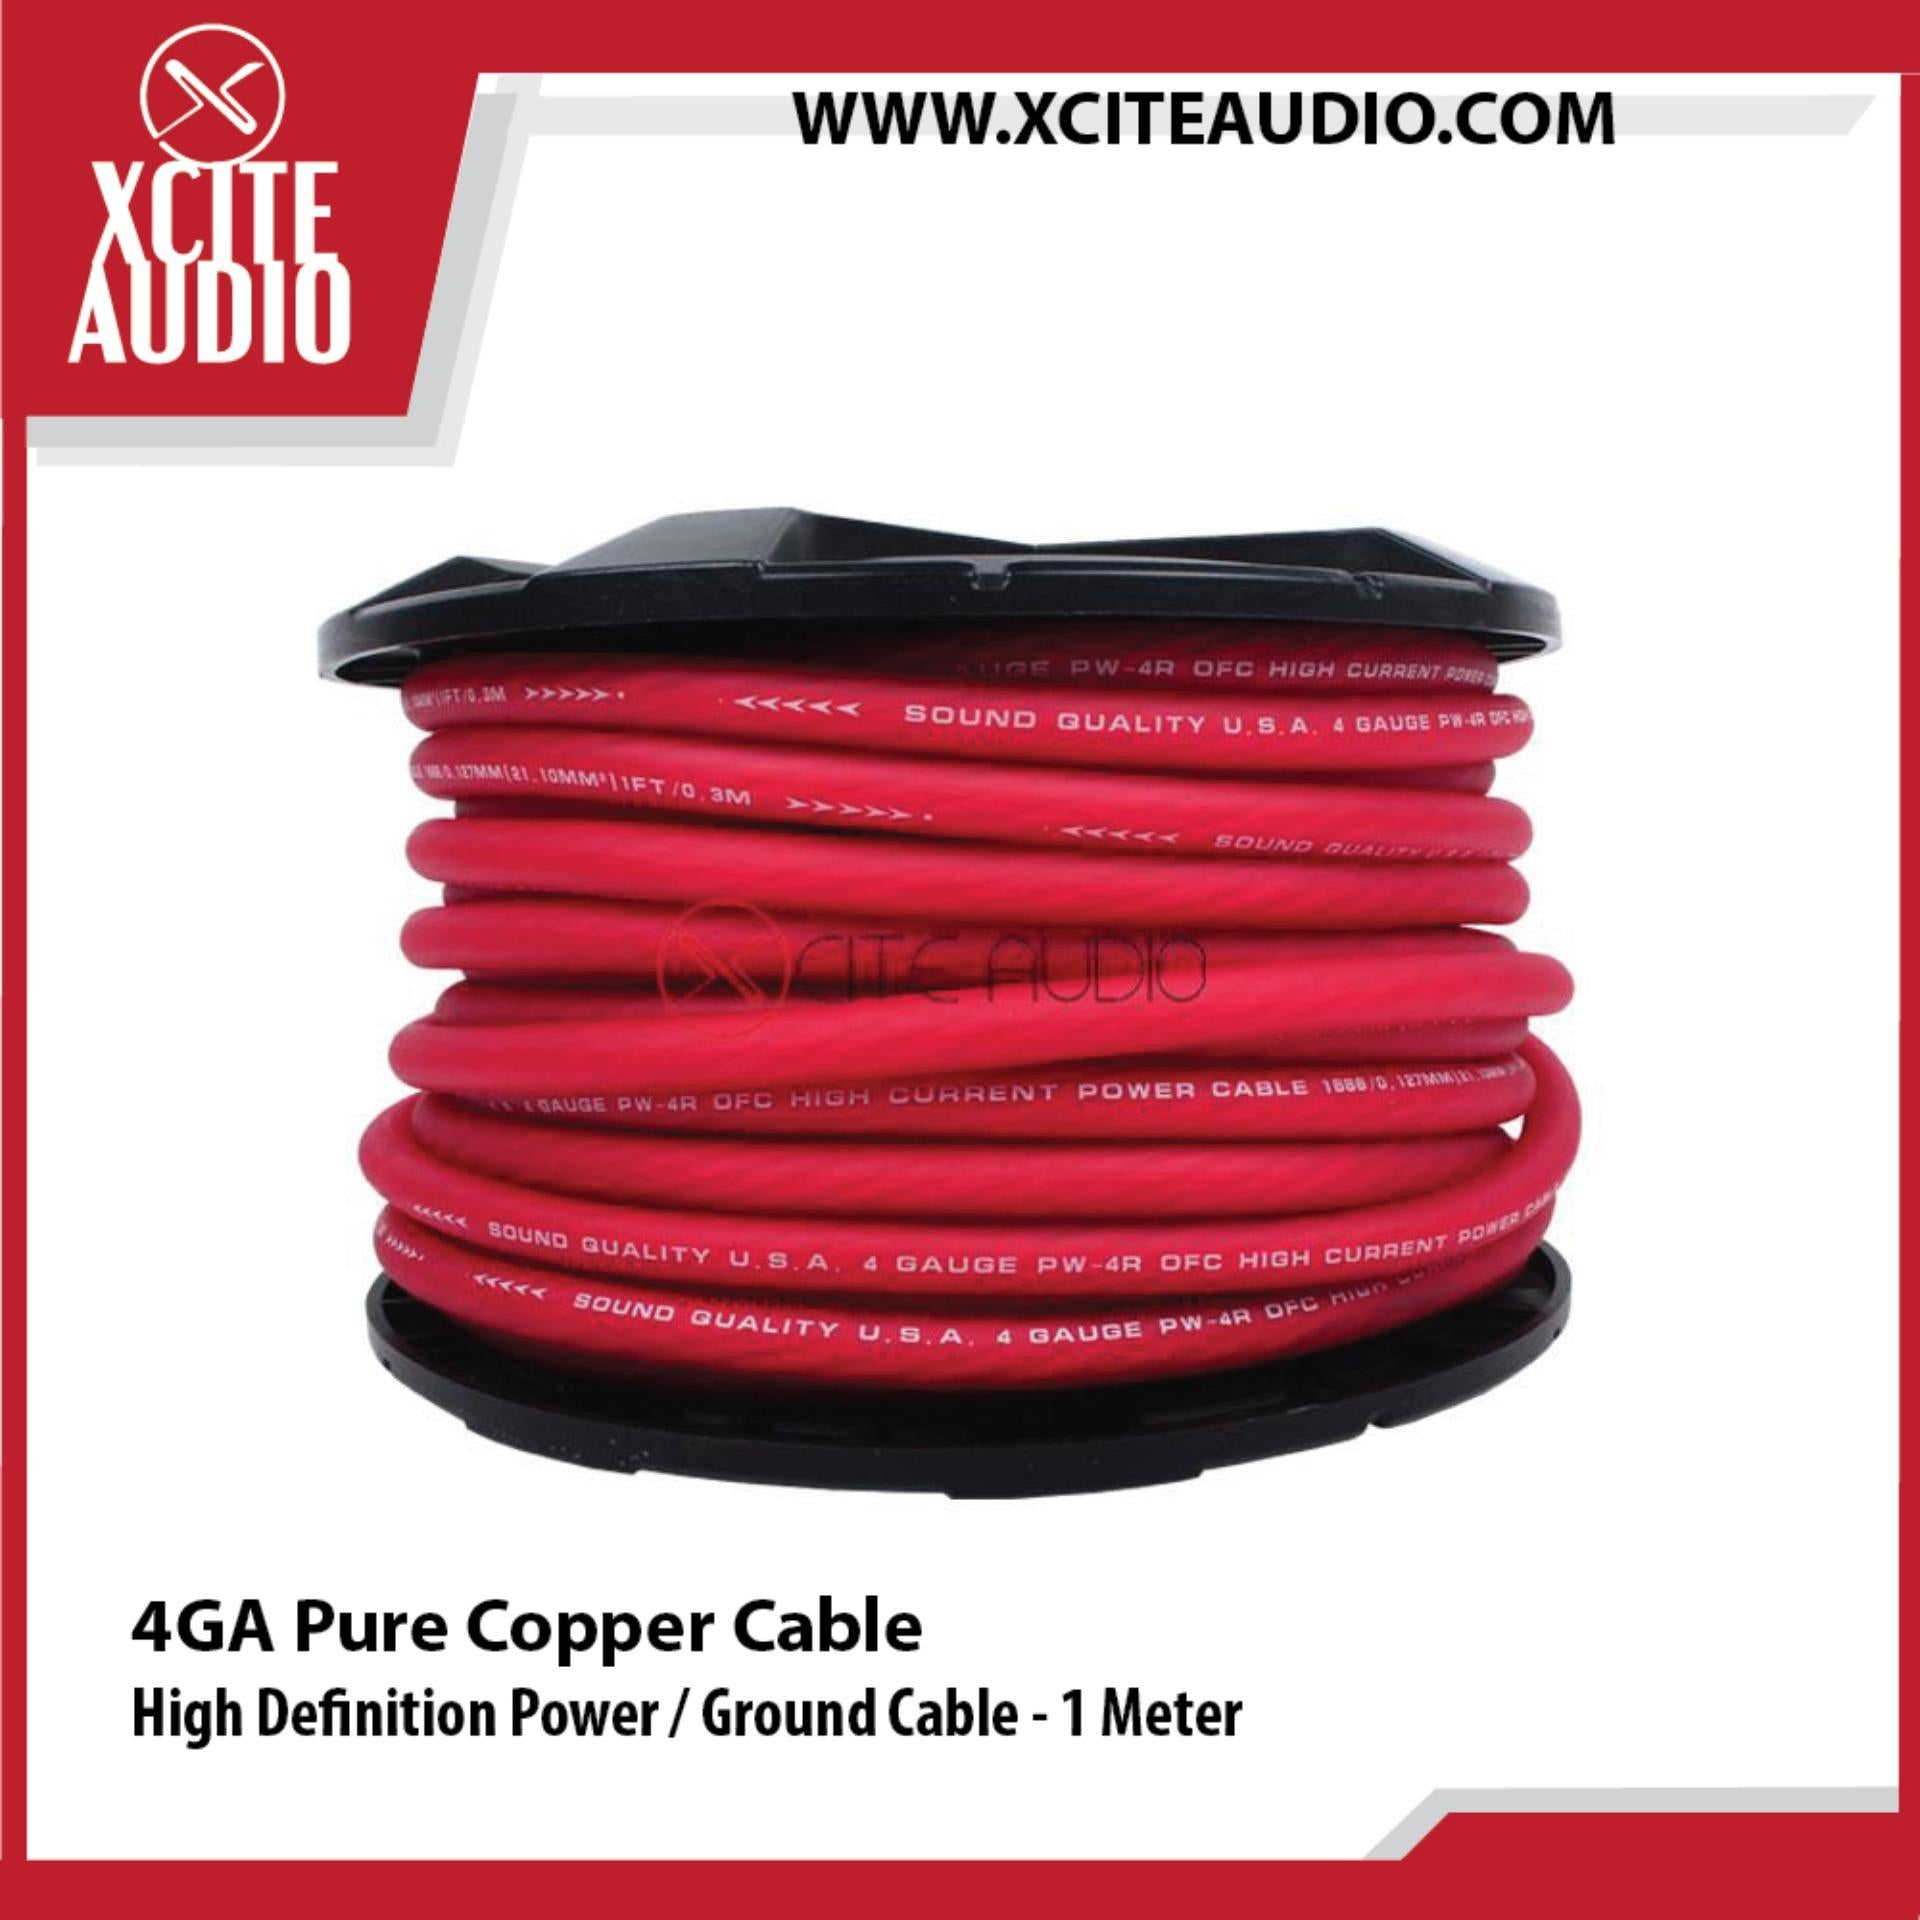 Magic 4GA Wire Pure Copper High Definition Power / Ground Cable - 1 Meter